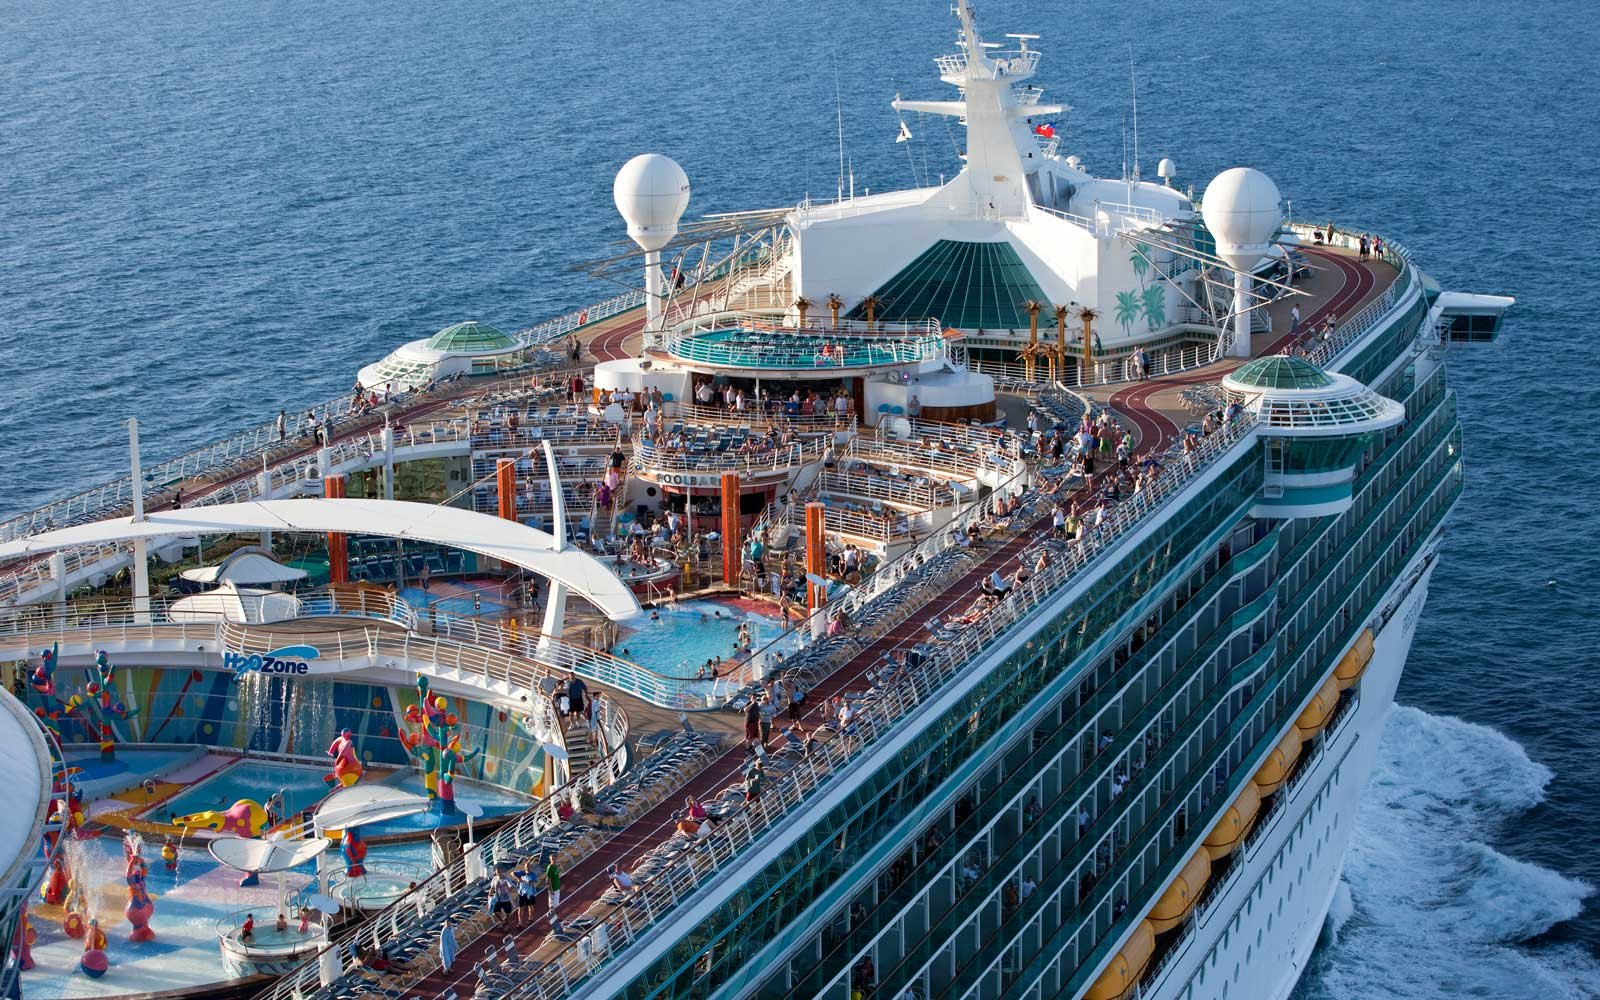 Five Things to Know About Royal Caribbean International's Freedom of the Seas Cruise Ship